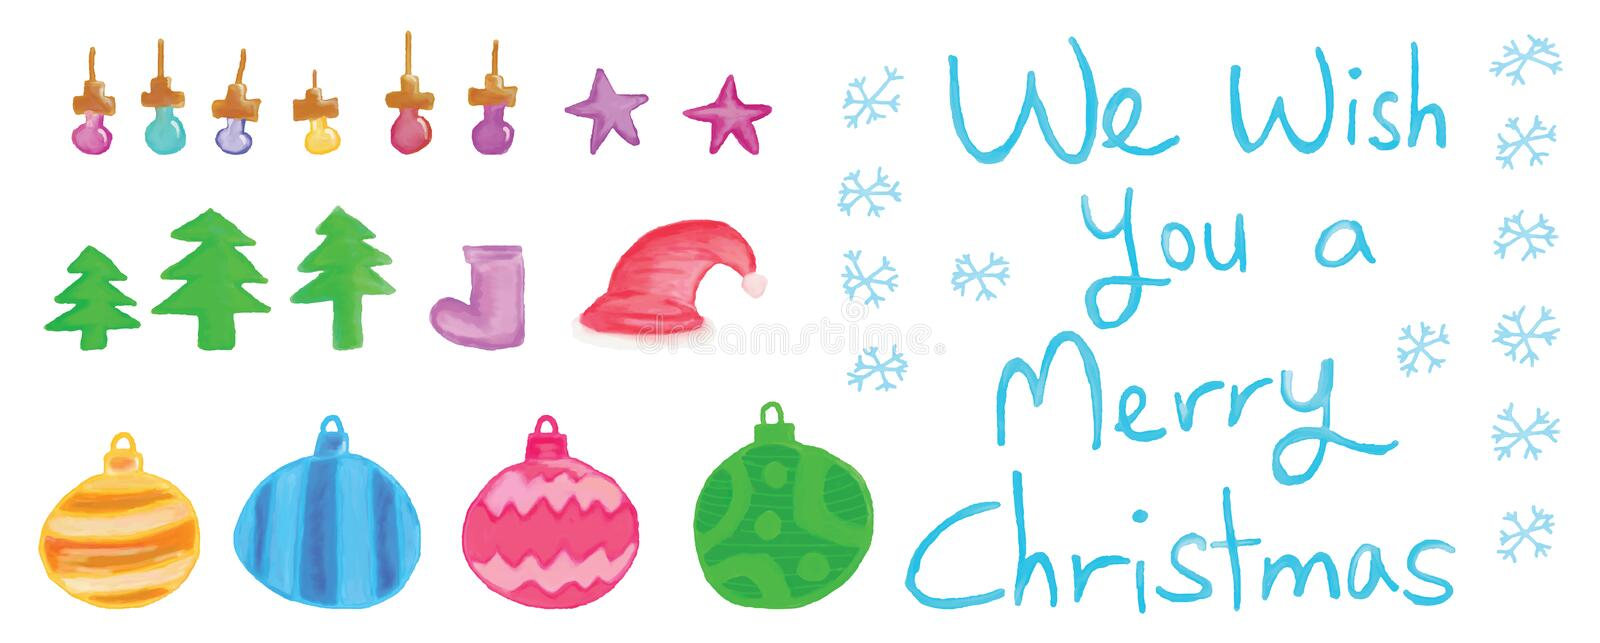 Merry Christmas set. This illustration is drawing Merry Christmas decoration in set and white color background royalty free illustration